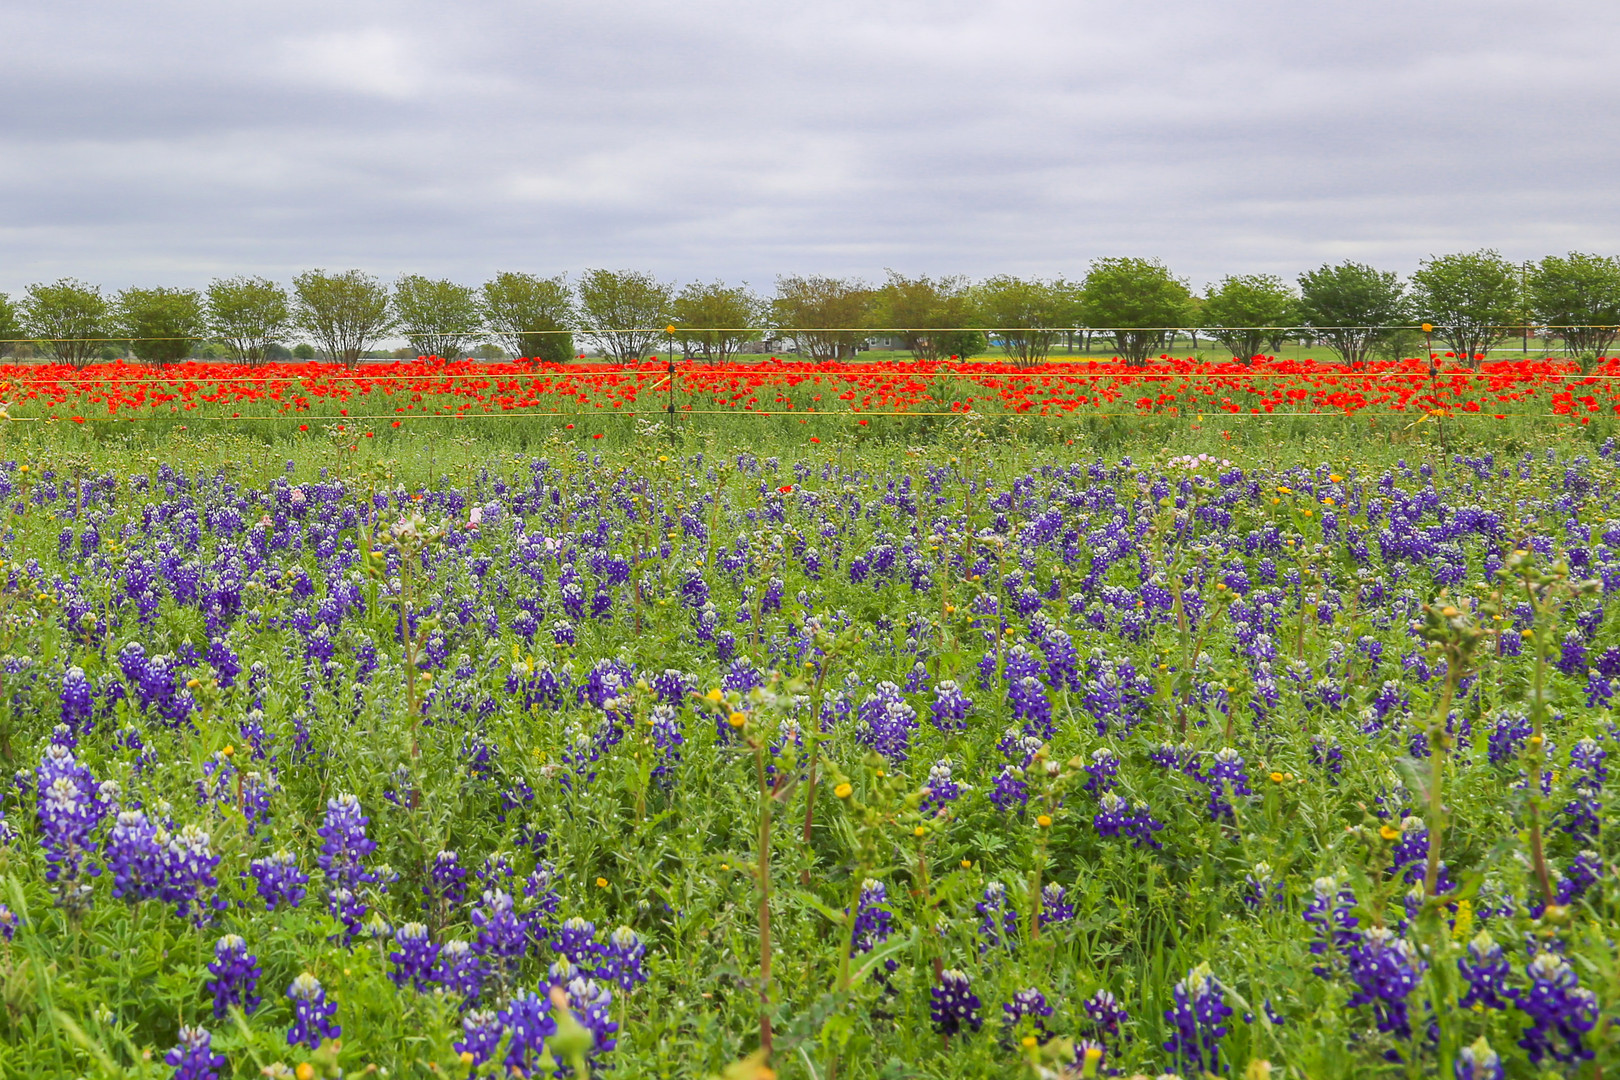 Bluebonnets and Poppies